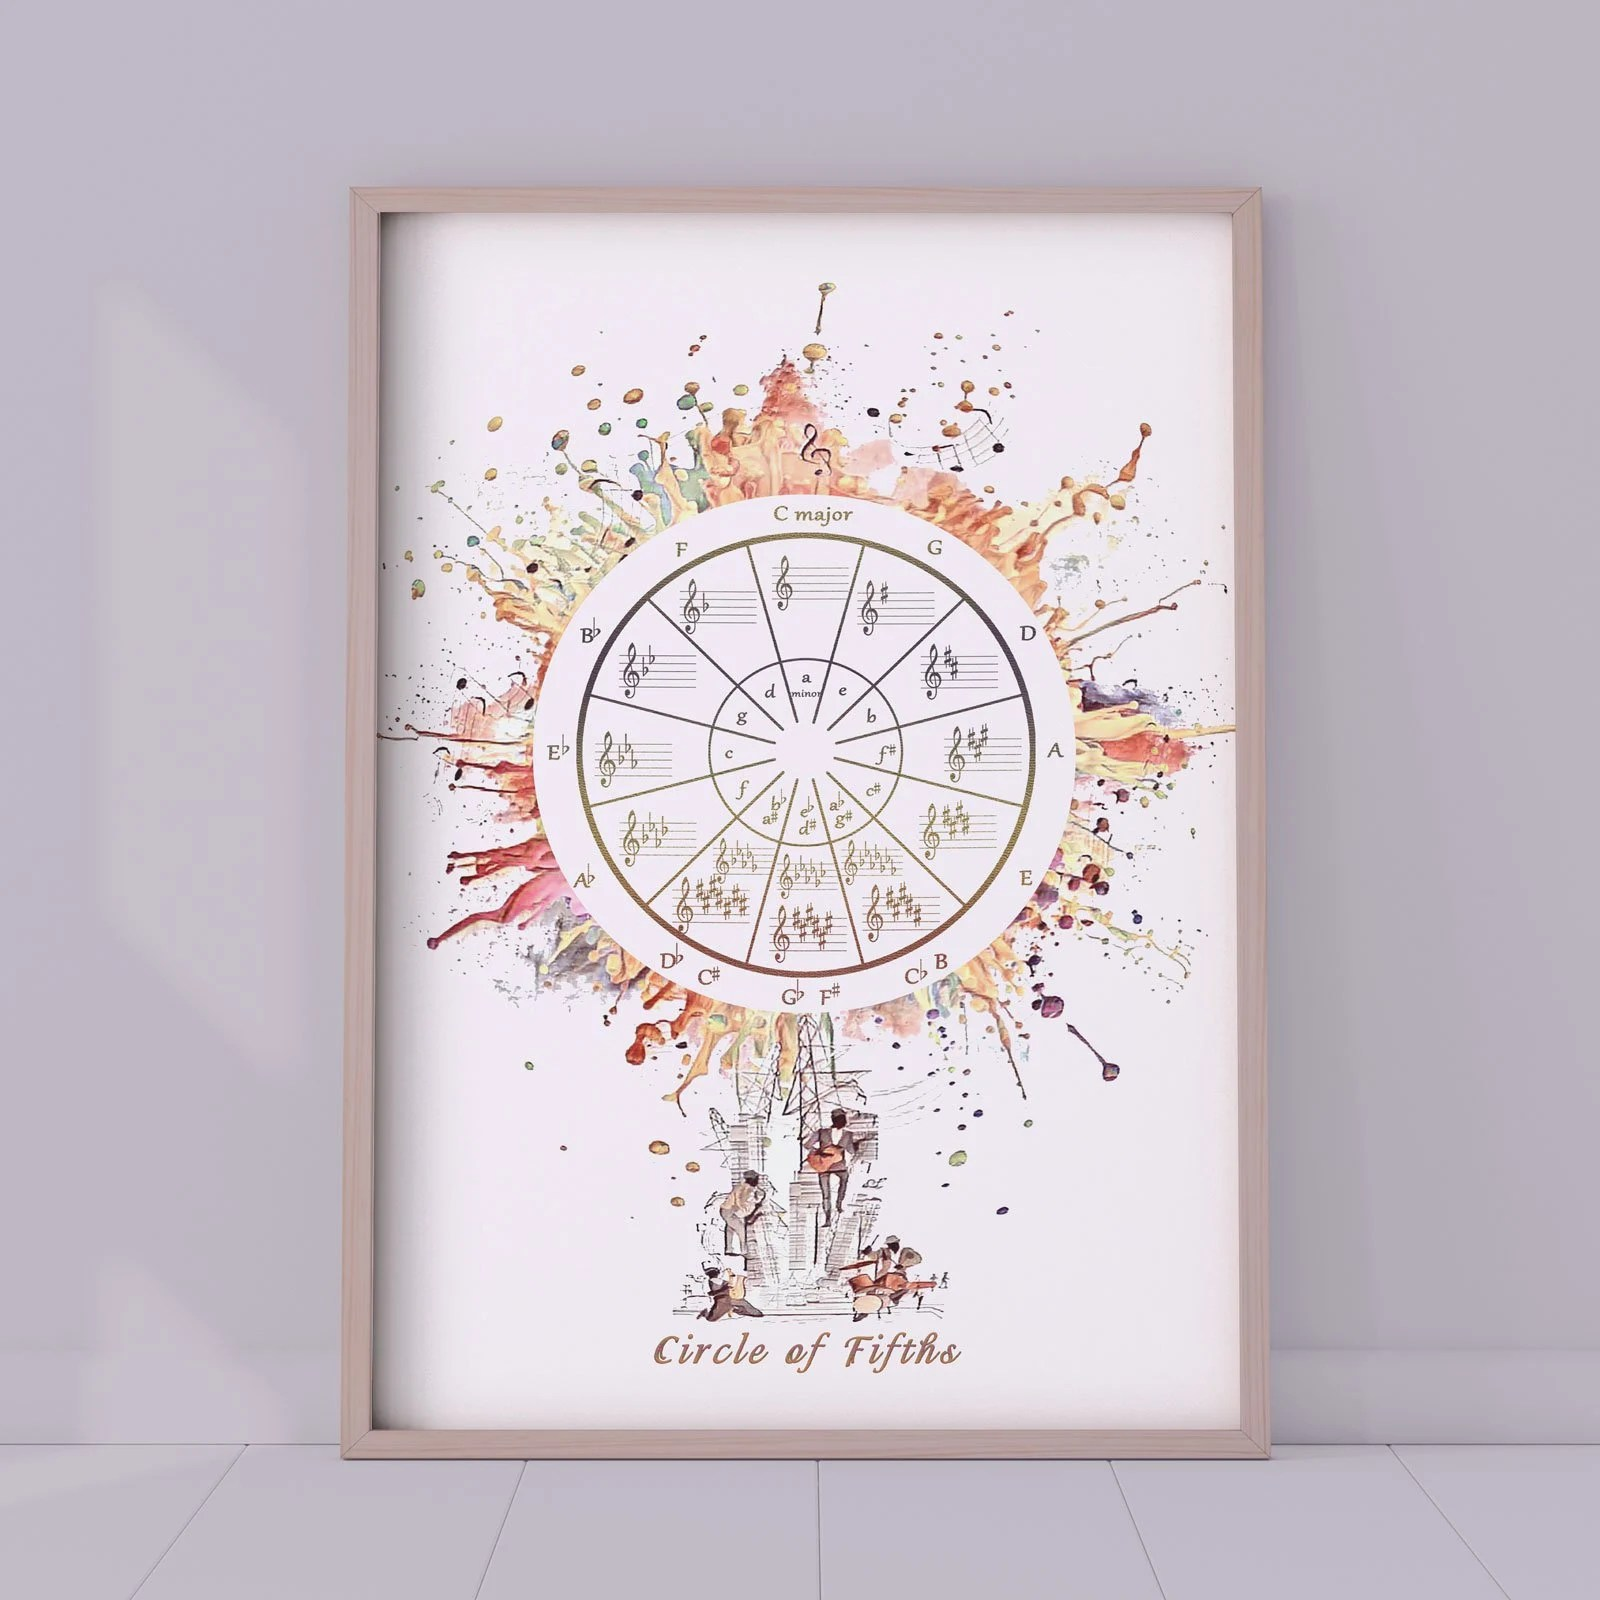 Circle of Fifths / Music / Graphic art prints / Music theory / Etsy